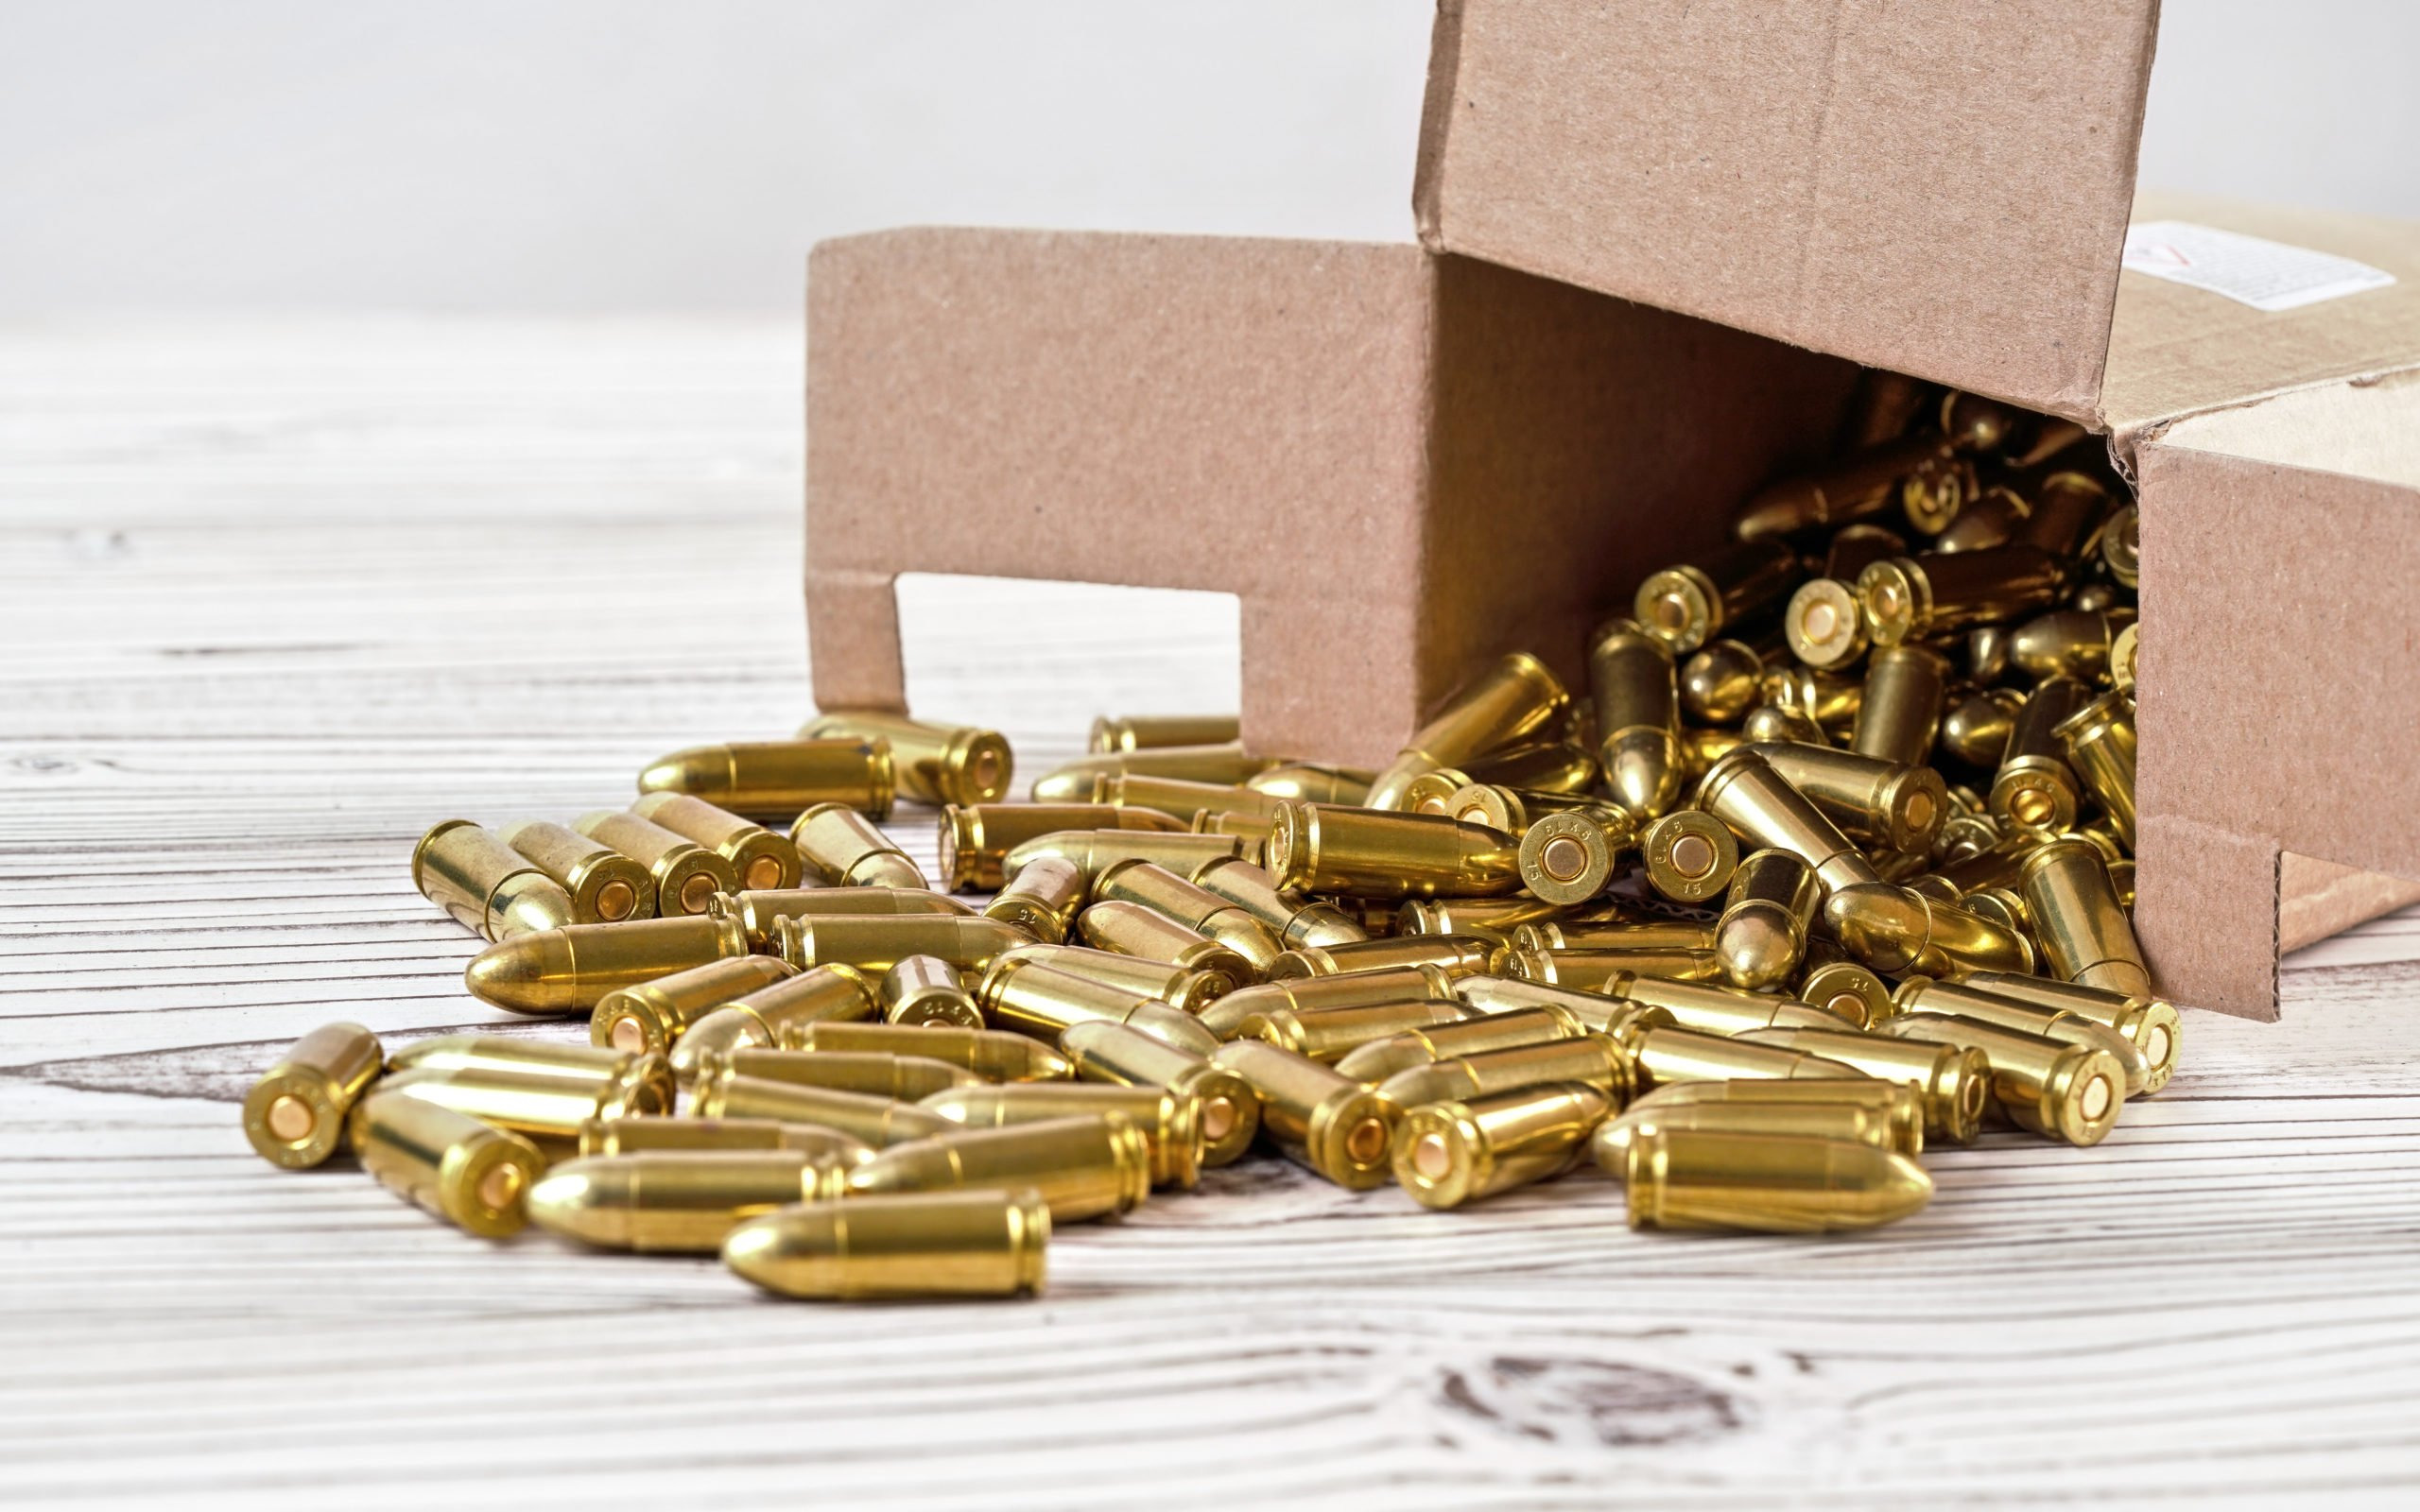 Ammunition Delivery Services Created Out of Necessity in New Jersey